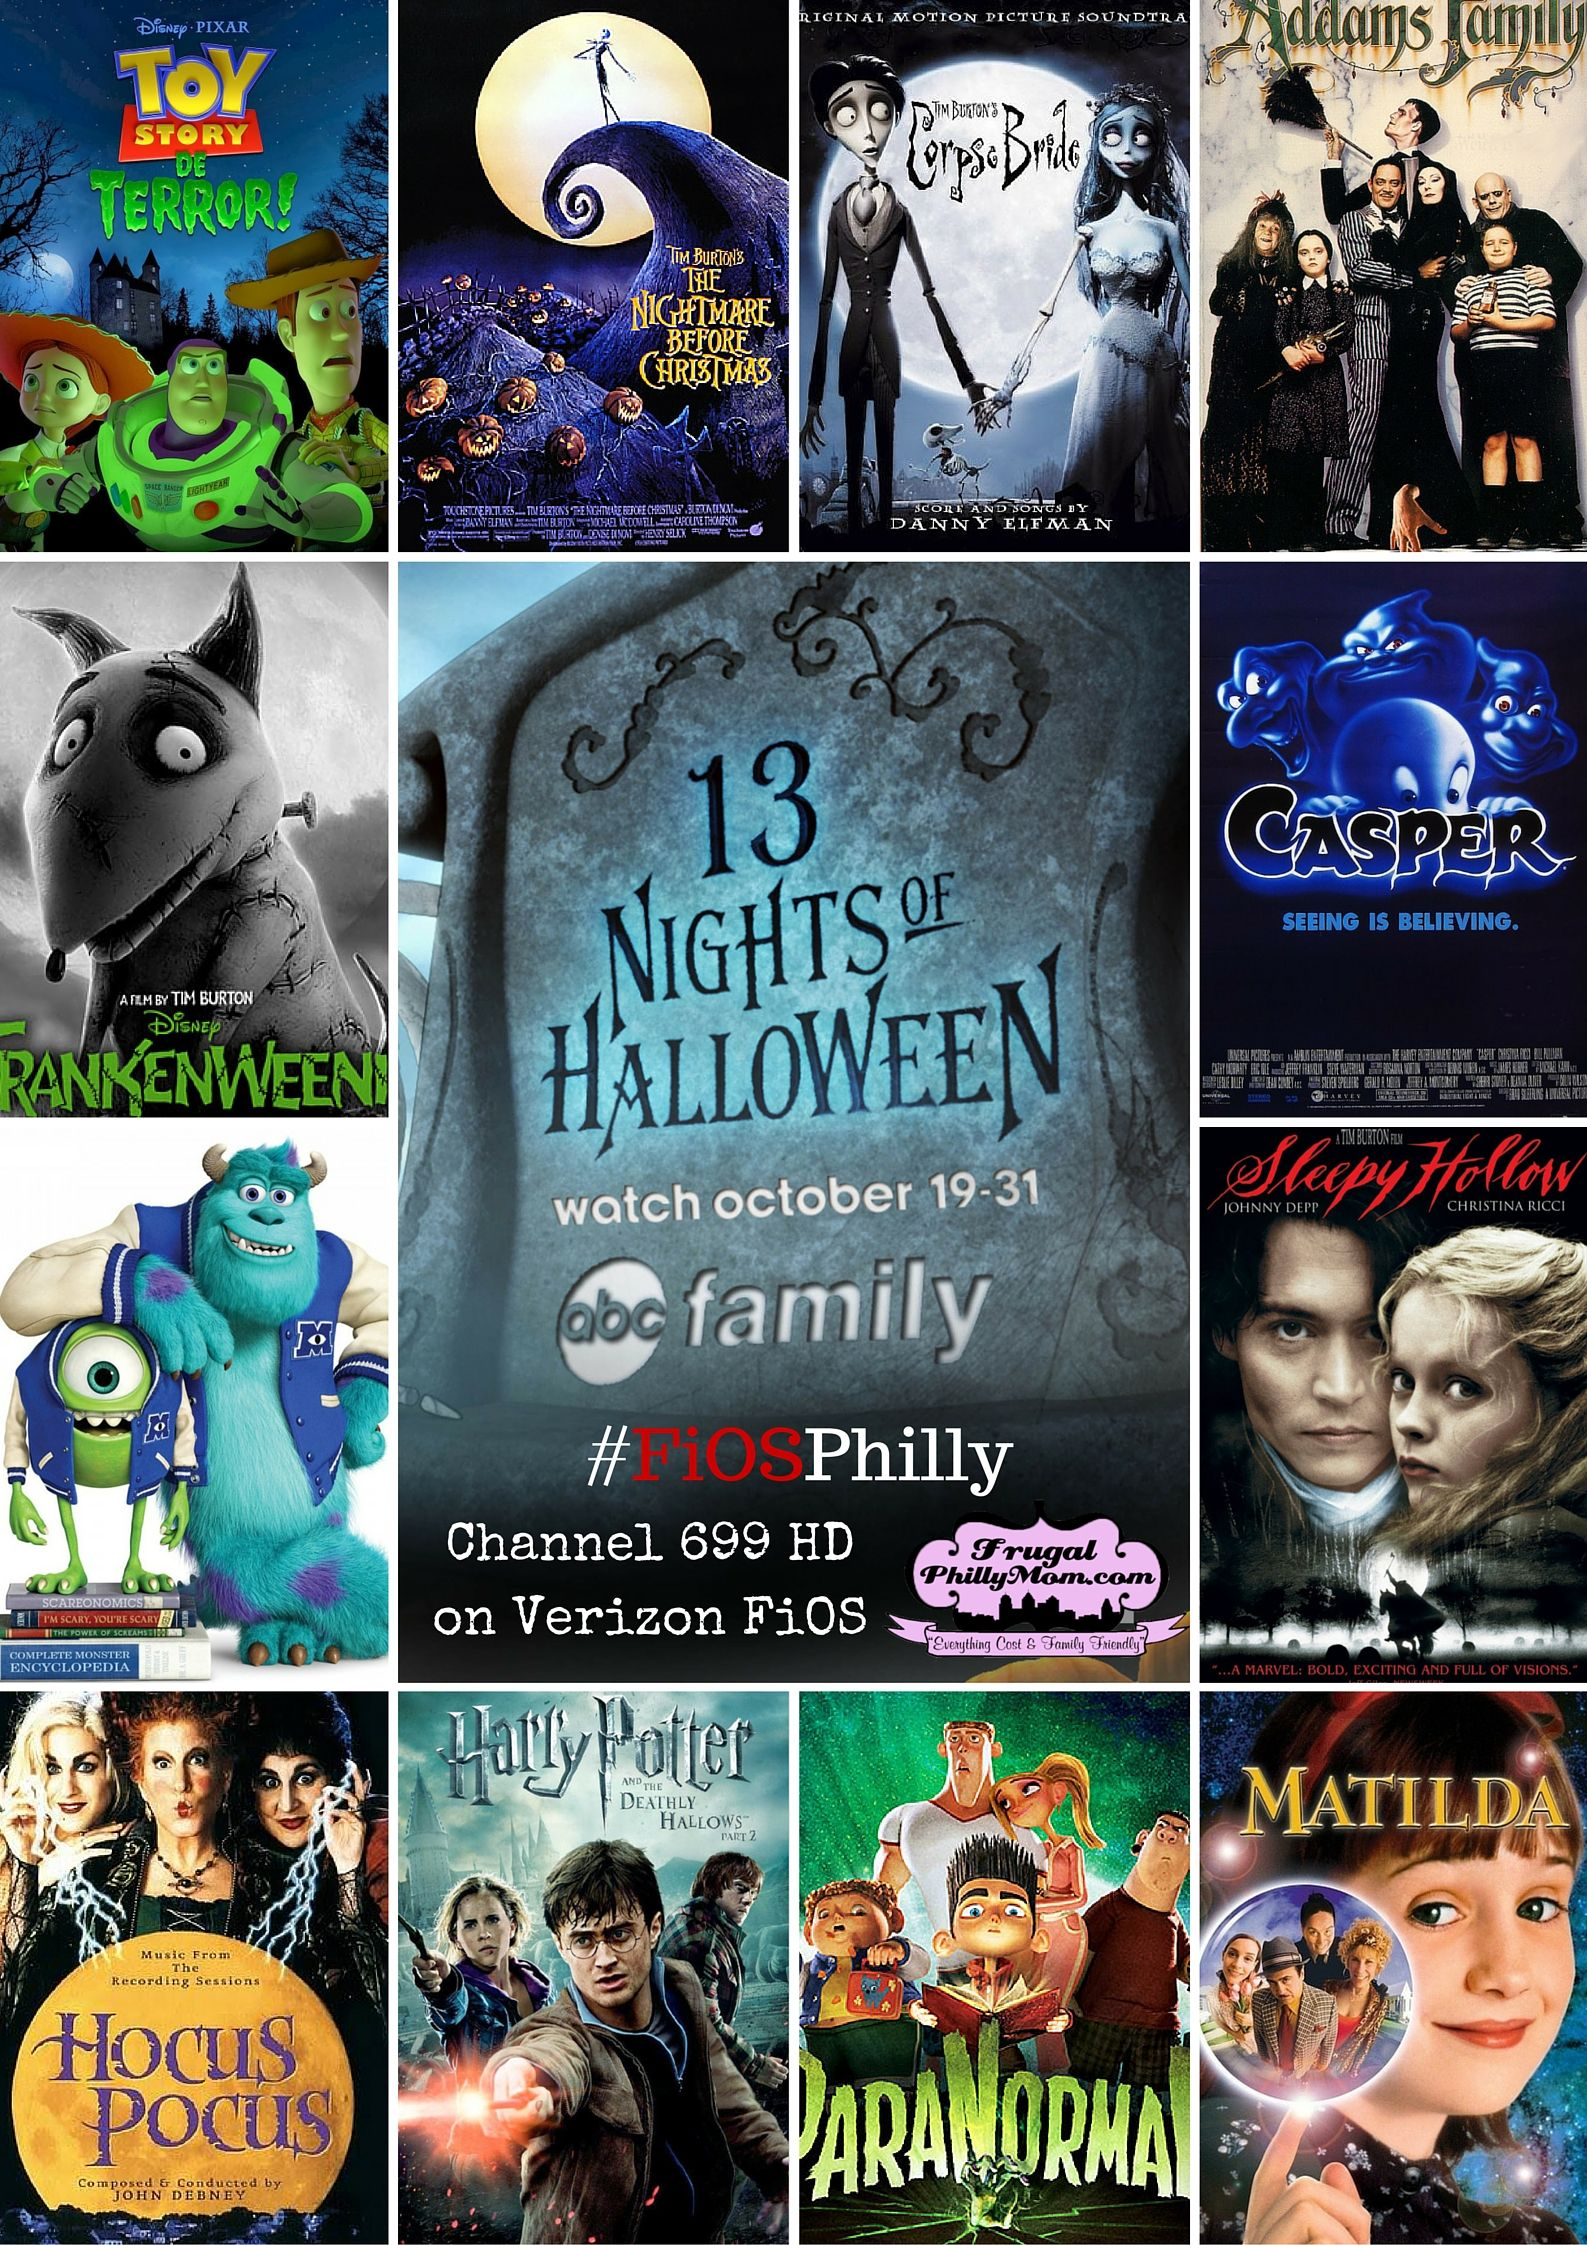 abc family 13 nights of halloween 2015 fiosphilly